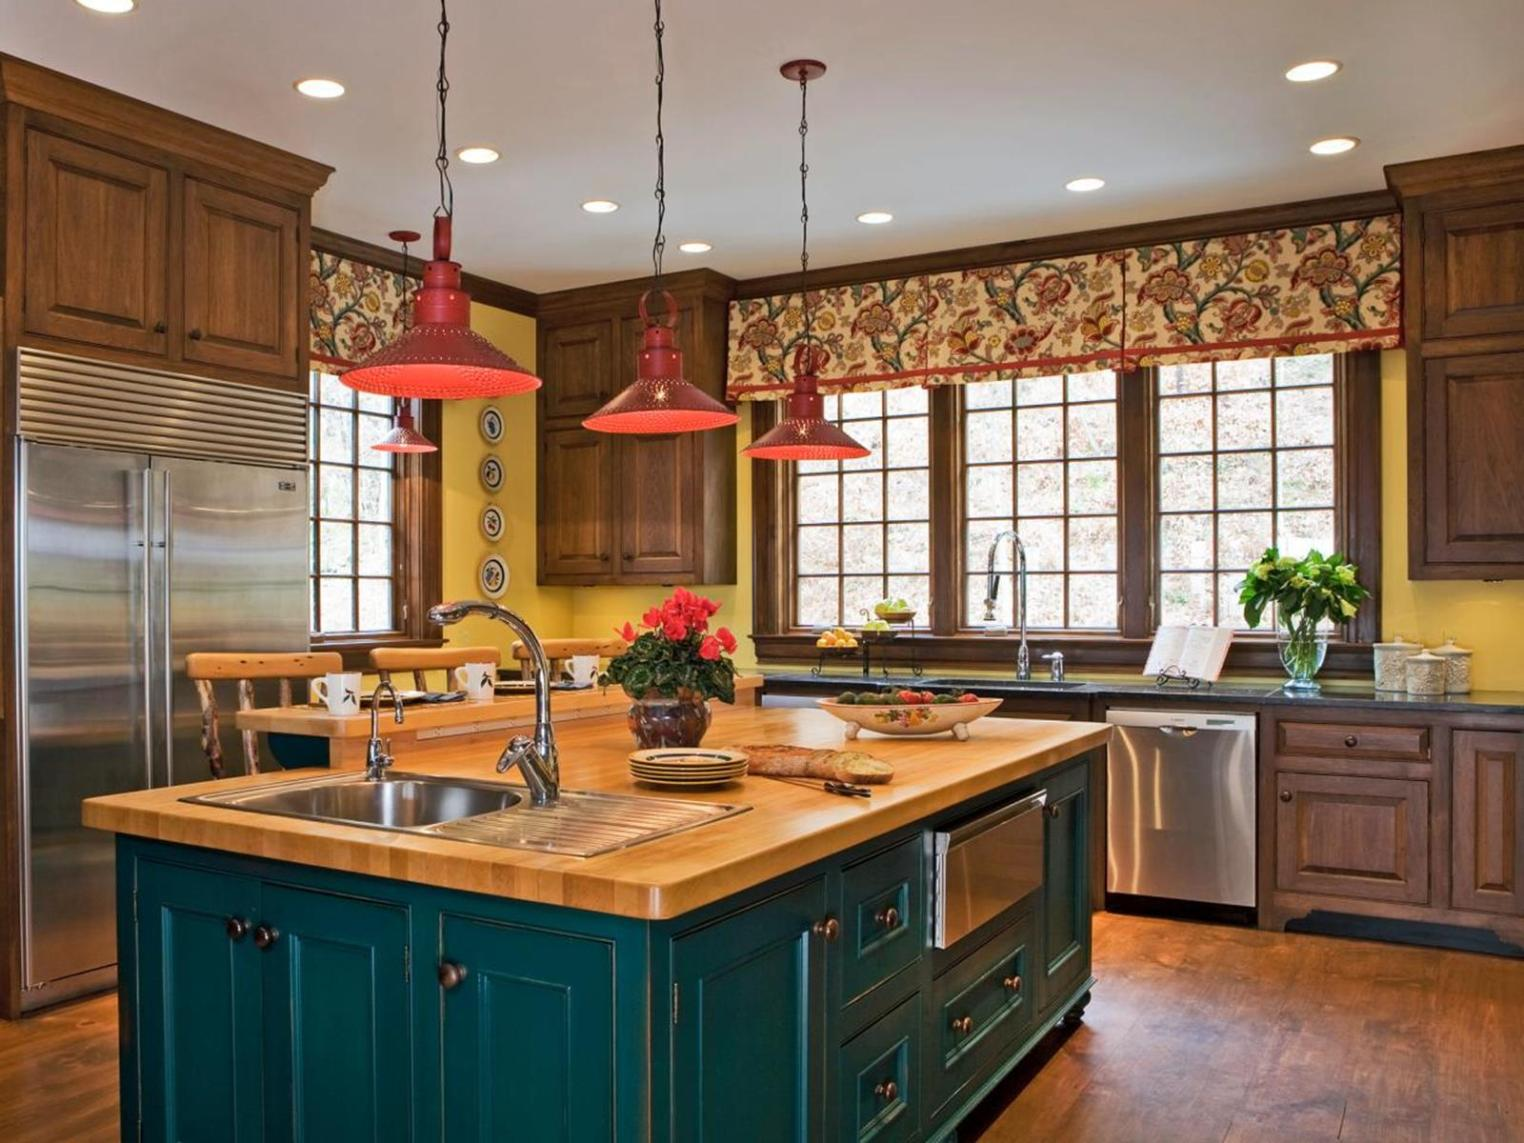 Projects to Make Kitchen More Neat and Beautiful 8